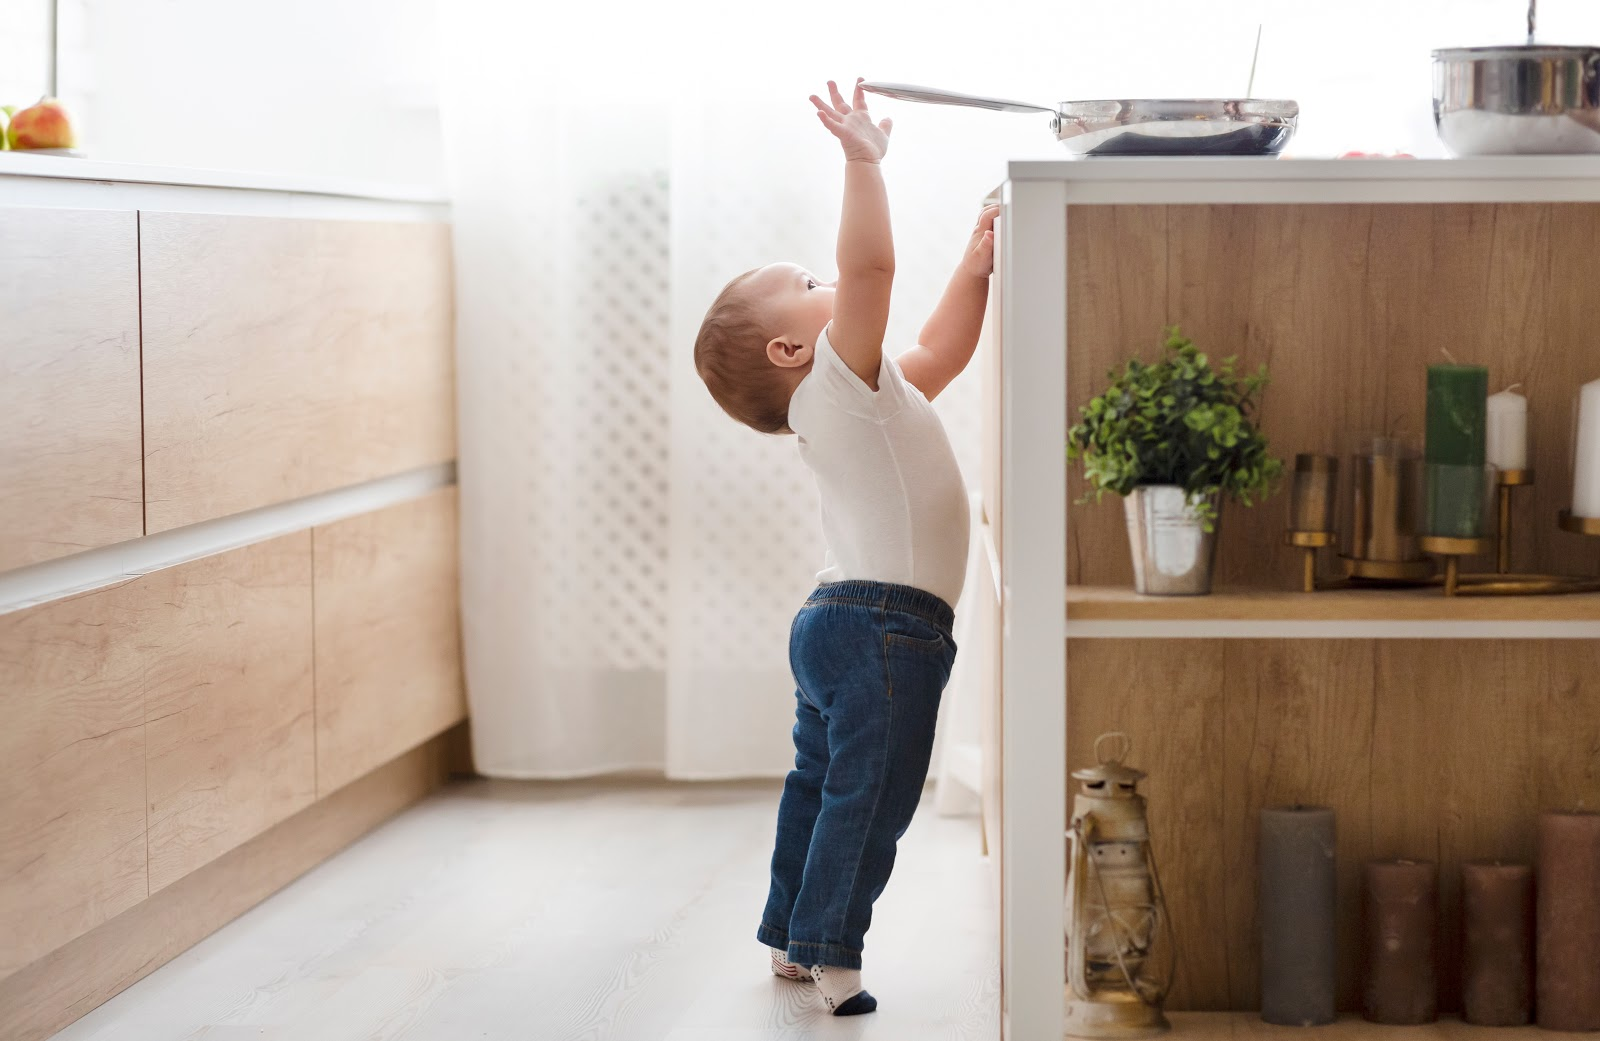 Toddler reaching for pan on the counter